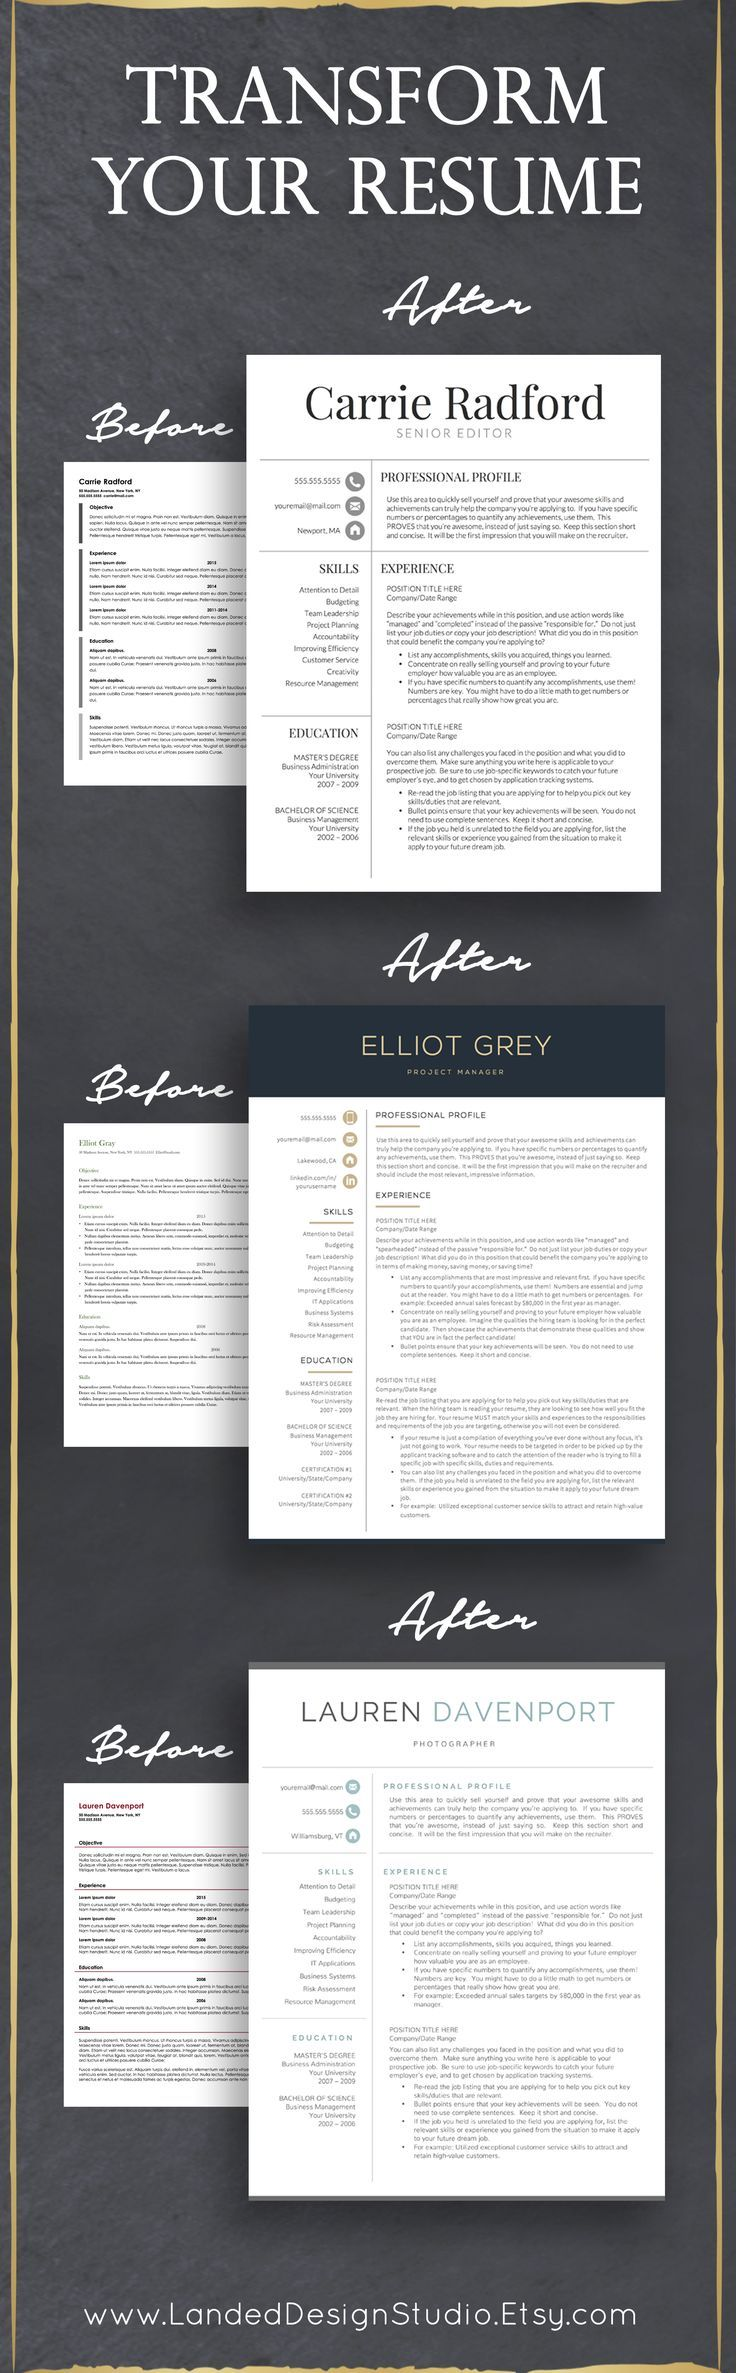 How to Properly Format Your Resume  Infographic   via  HubSpot     How to Properly Format Your Resume  Infographic   via  HubSpot   Career  Trends   Pinterest   Infographic  Job interviews and Business